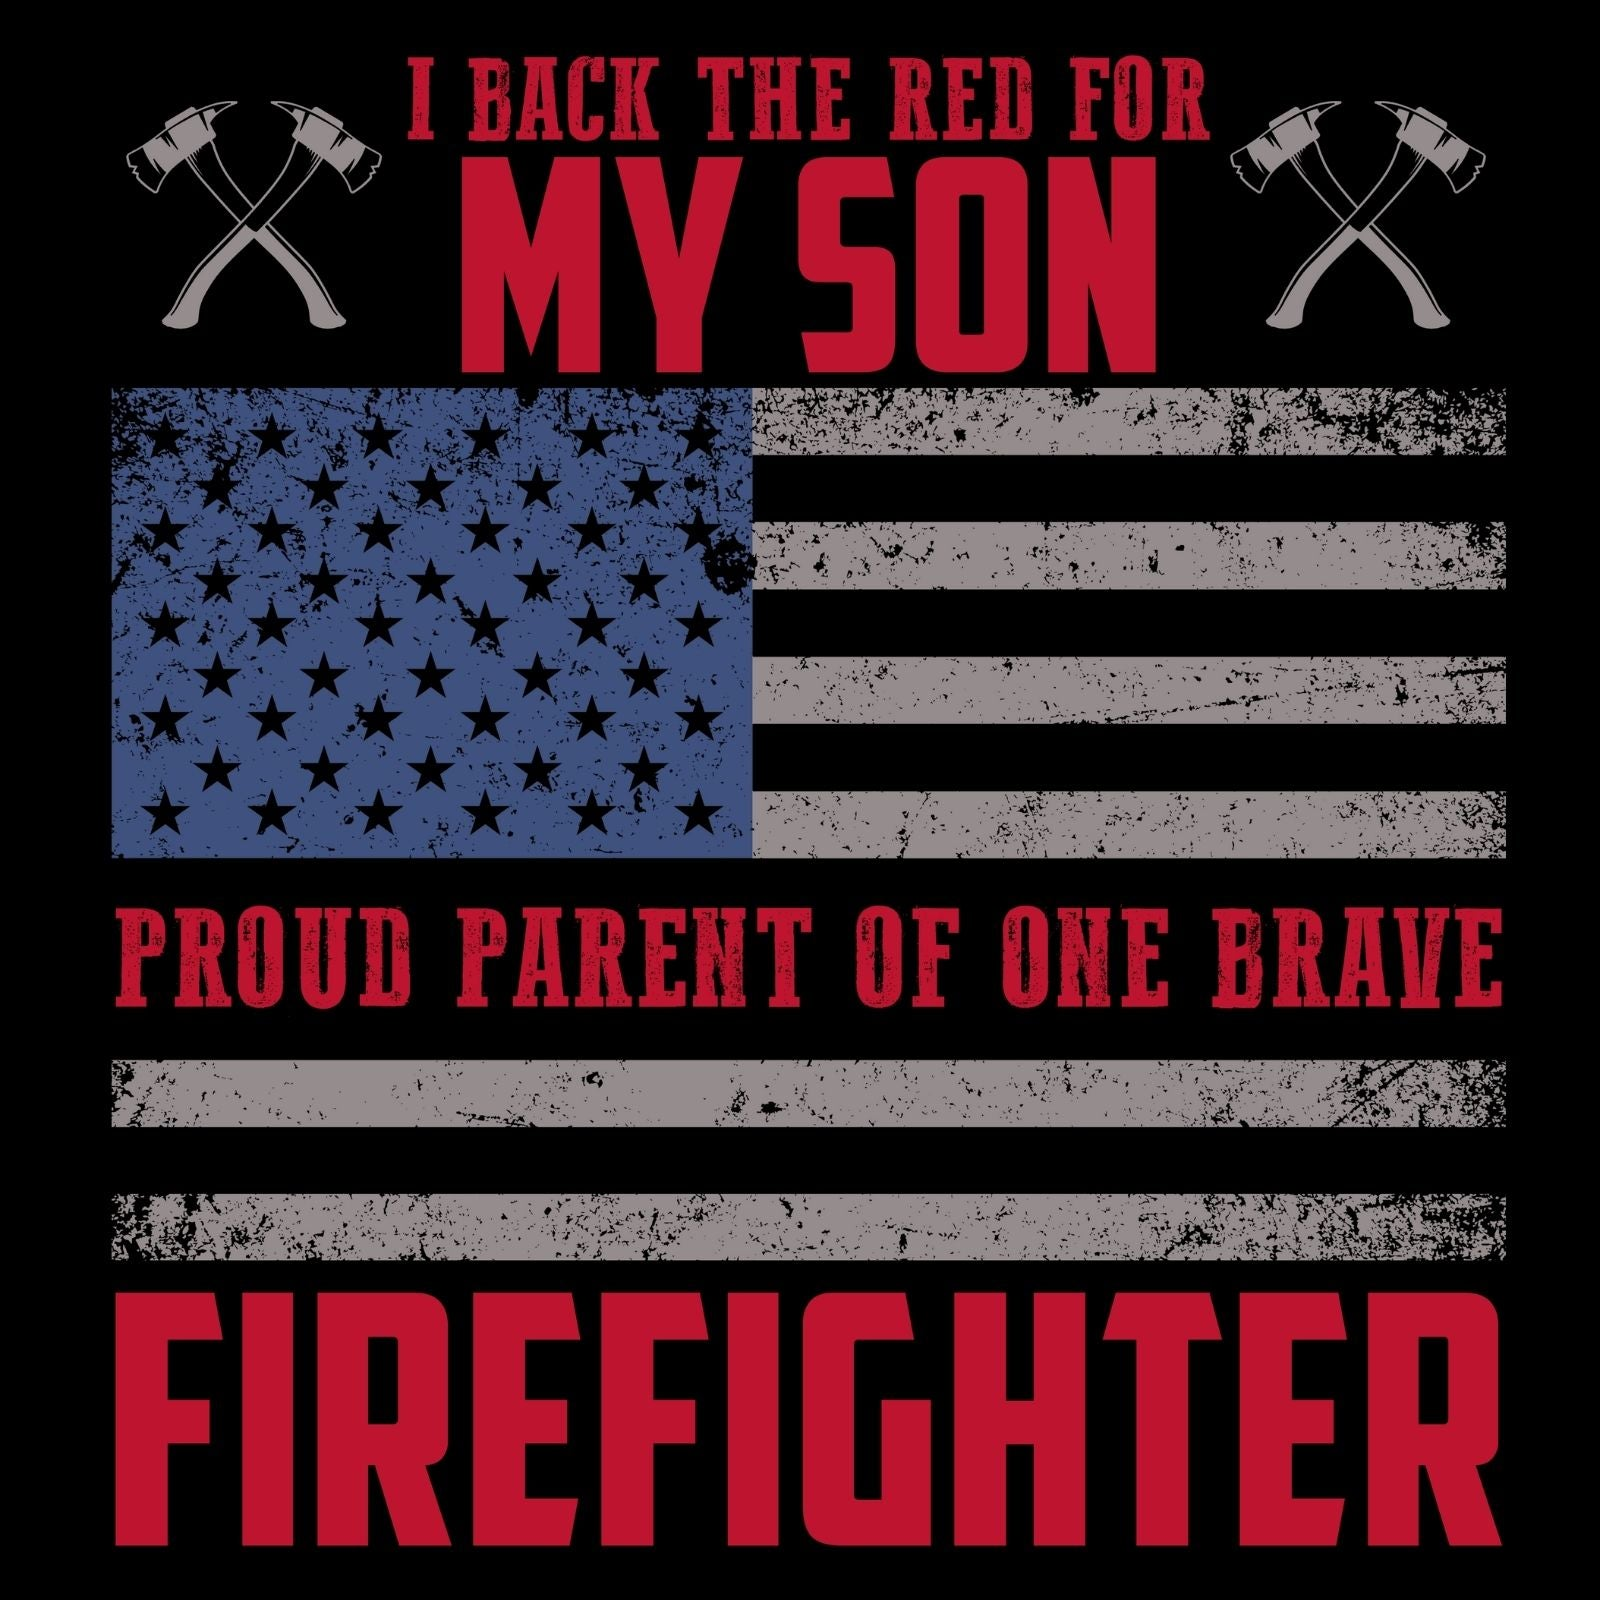 I Back The Red For My Son, Proud Parent Of One Brave Firefighter - Bastard Graphics